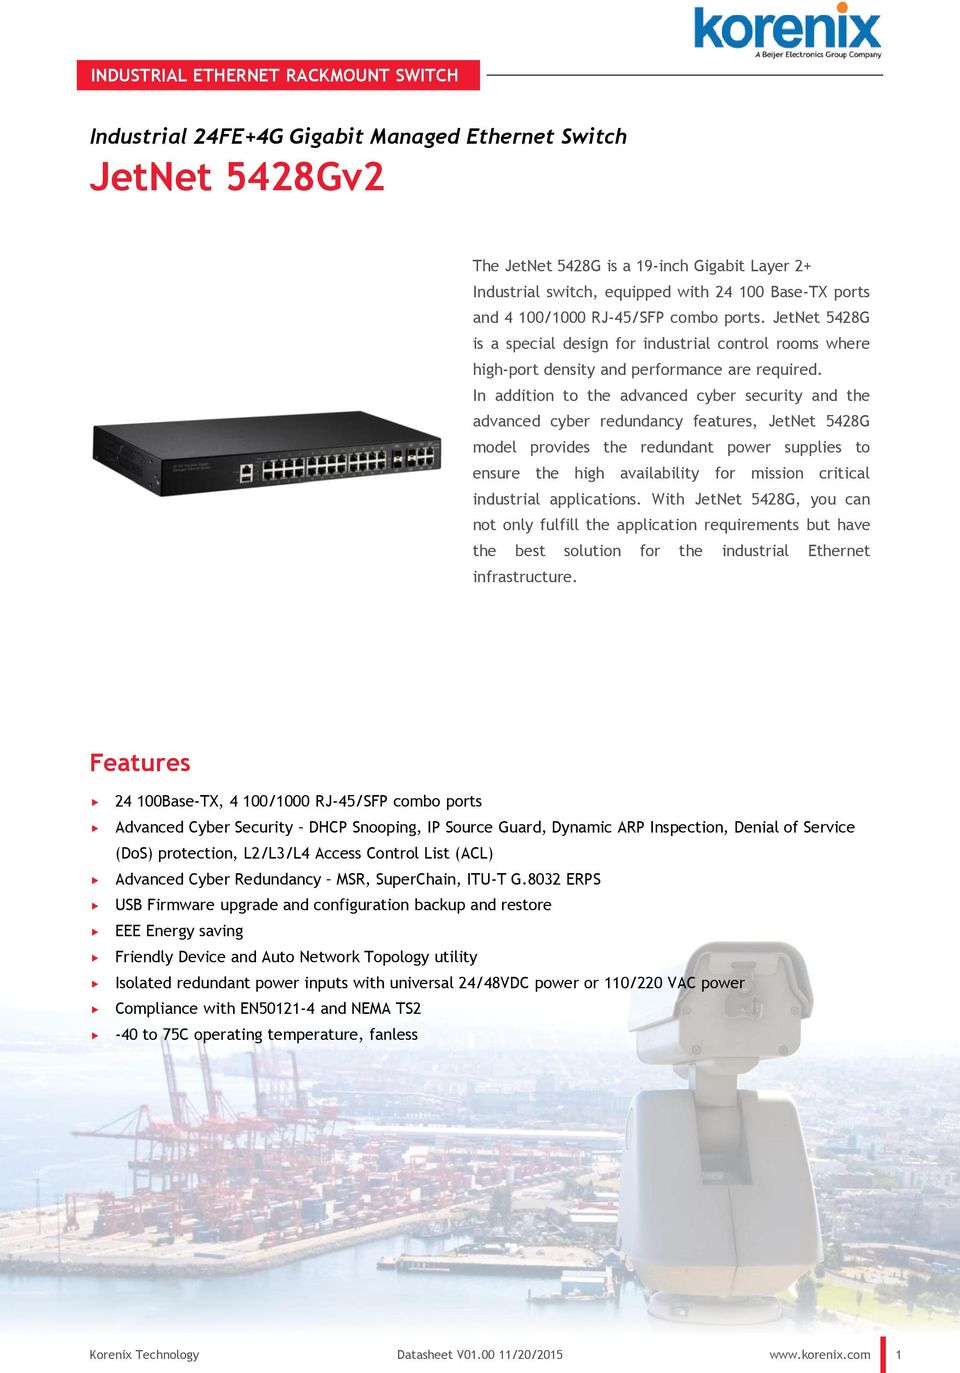 In addition to the advanced cyber security and the advanced cyber redundancy features, JetNet 5428G model provides the redundant power supplies to ensure the high availability for mission critical